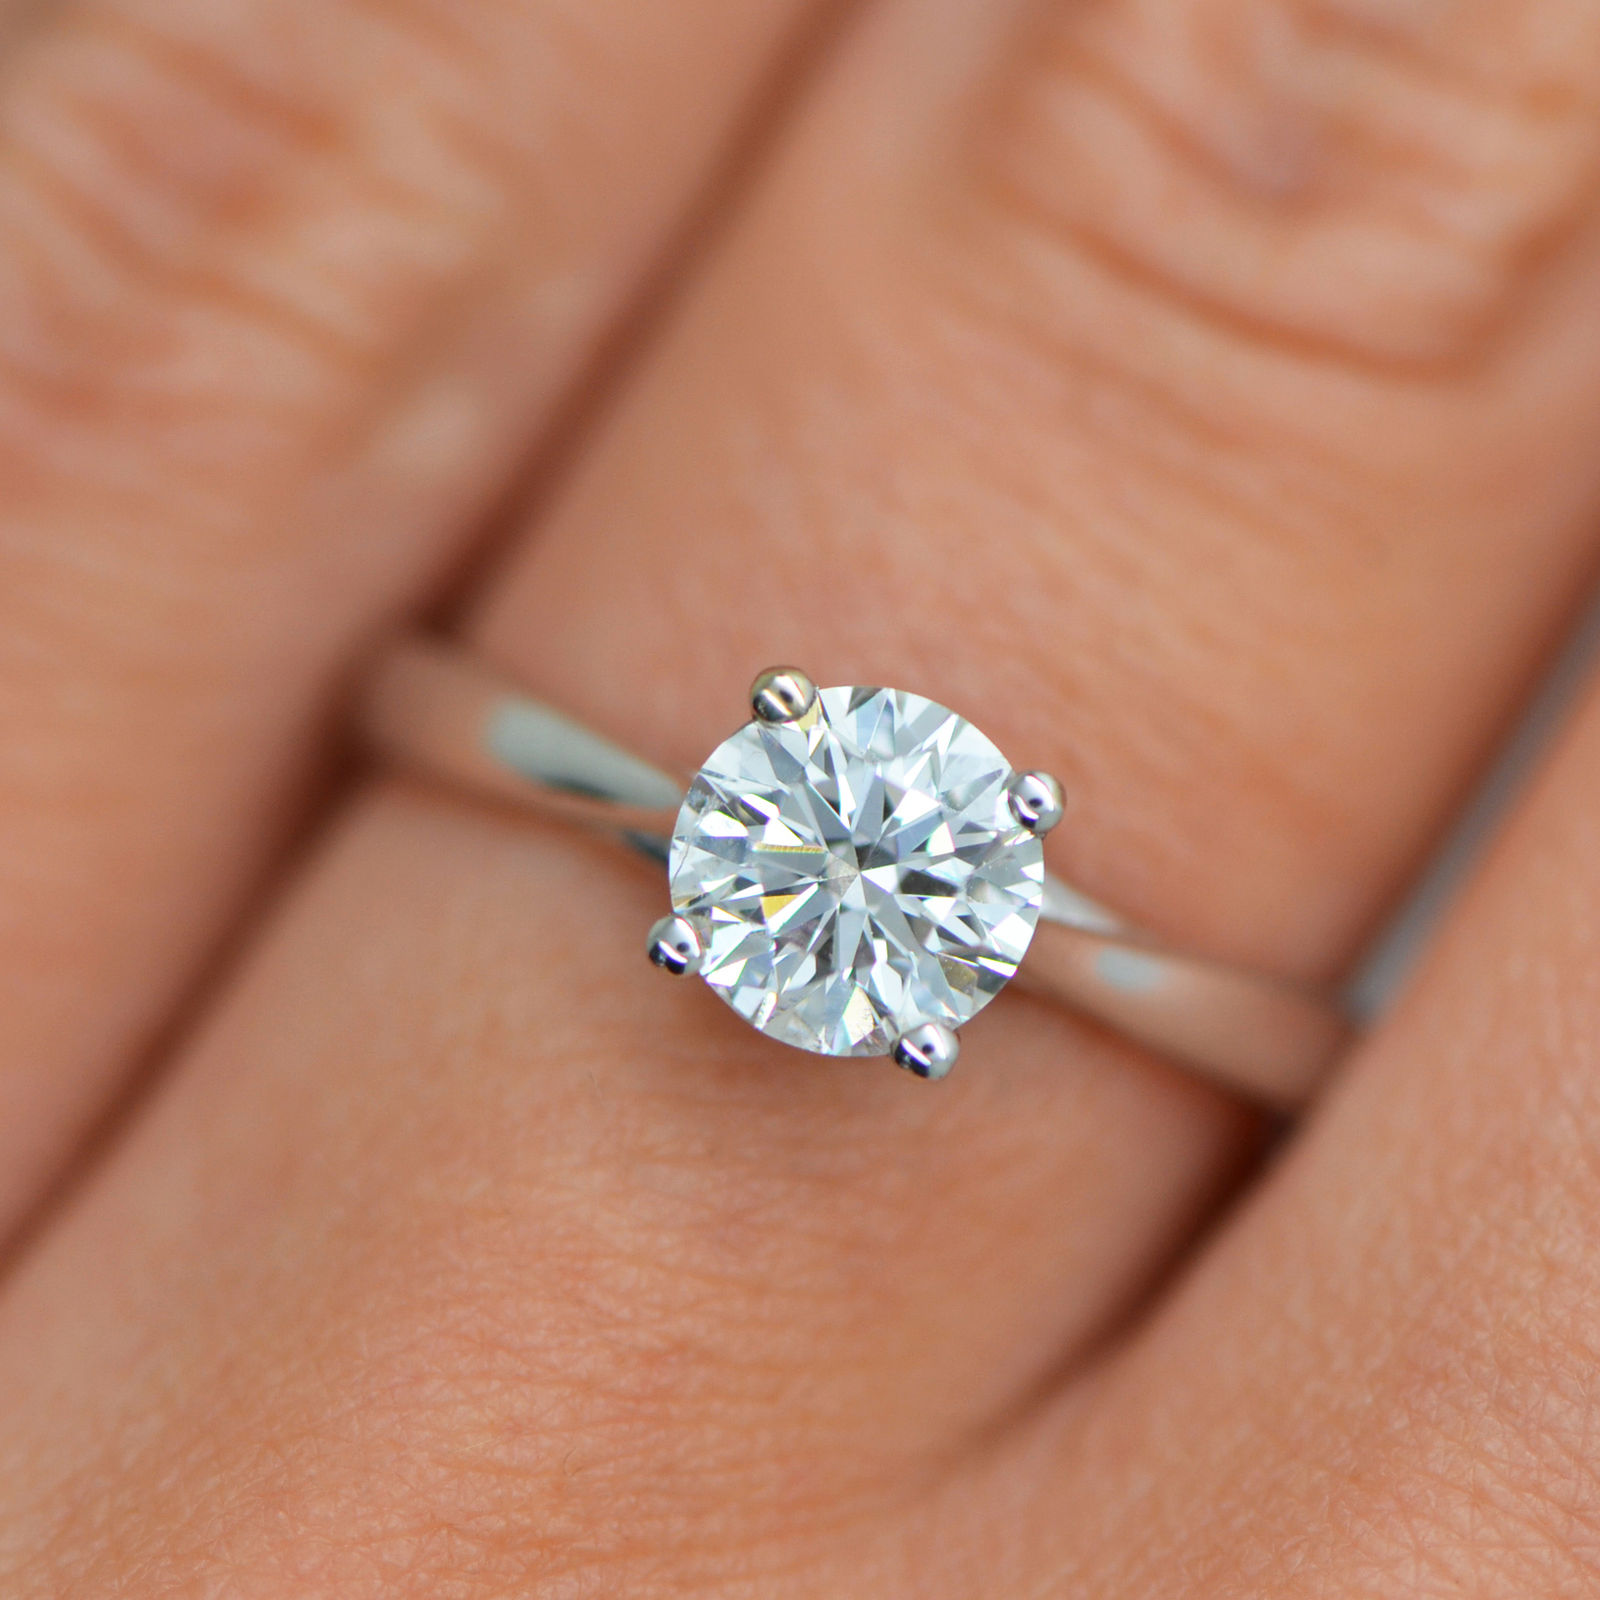 1 Carat Round Cut F/VS2 Diamond Solitaire Engagement Ring ...